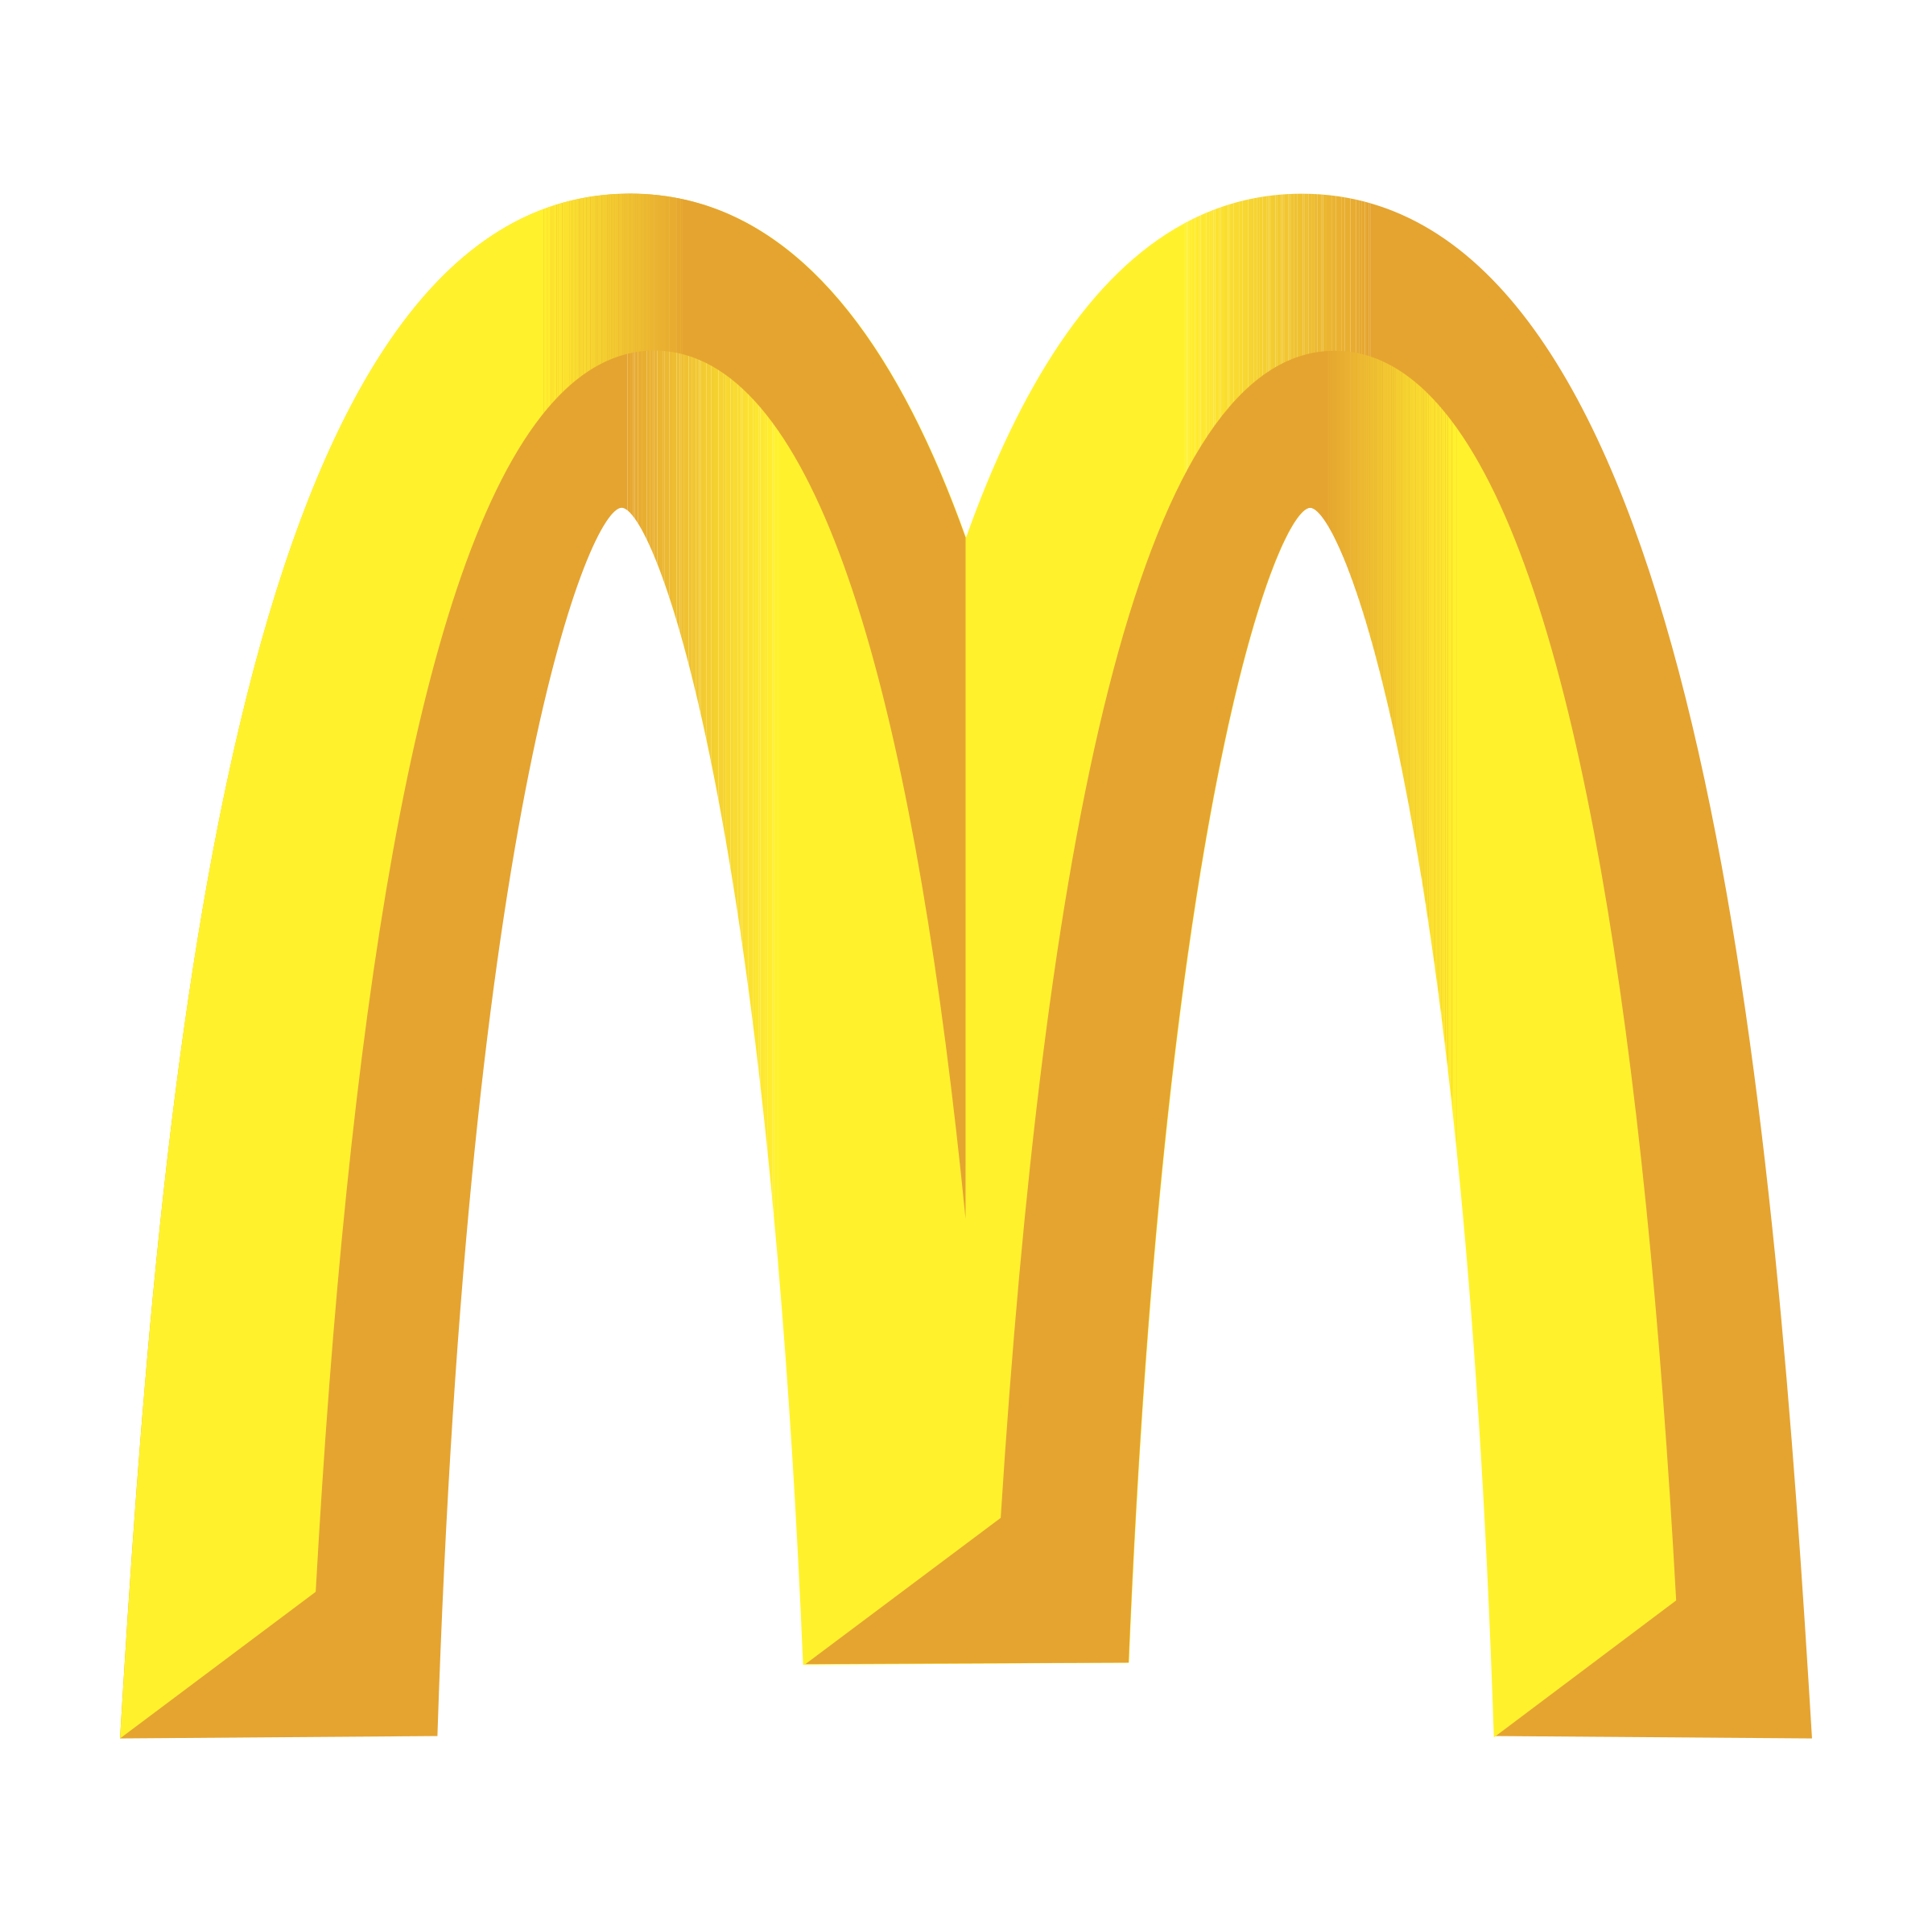 McDonald's Logo PNG Transparent & SVG Vector.